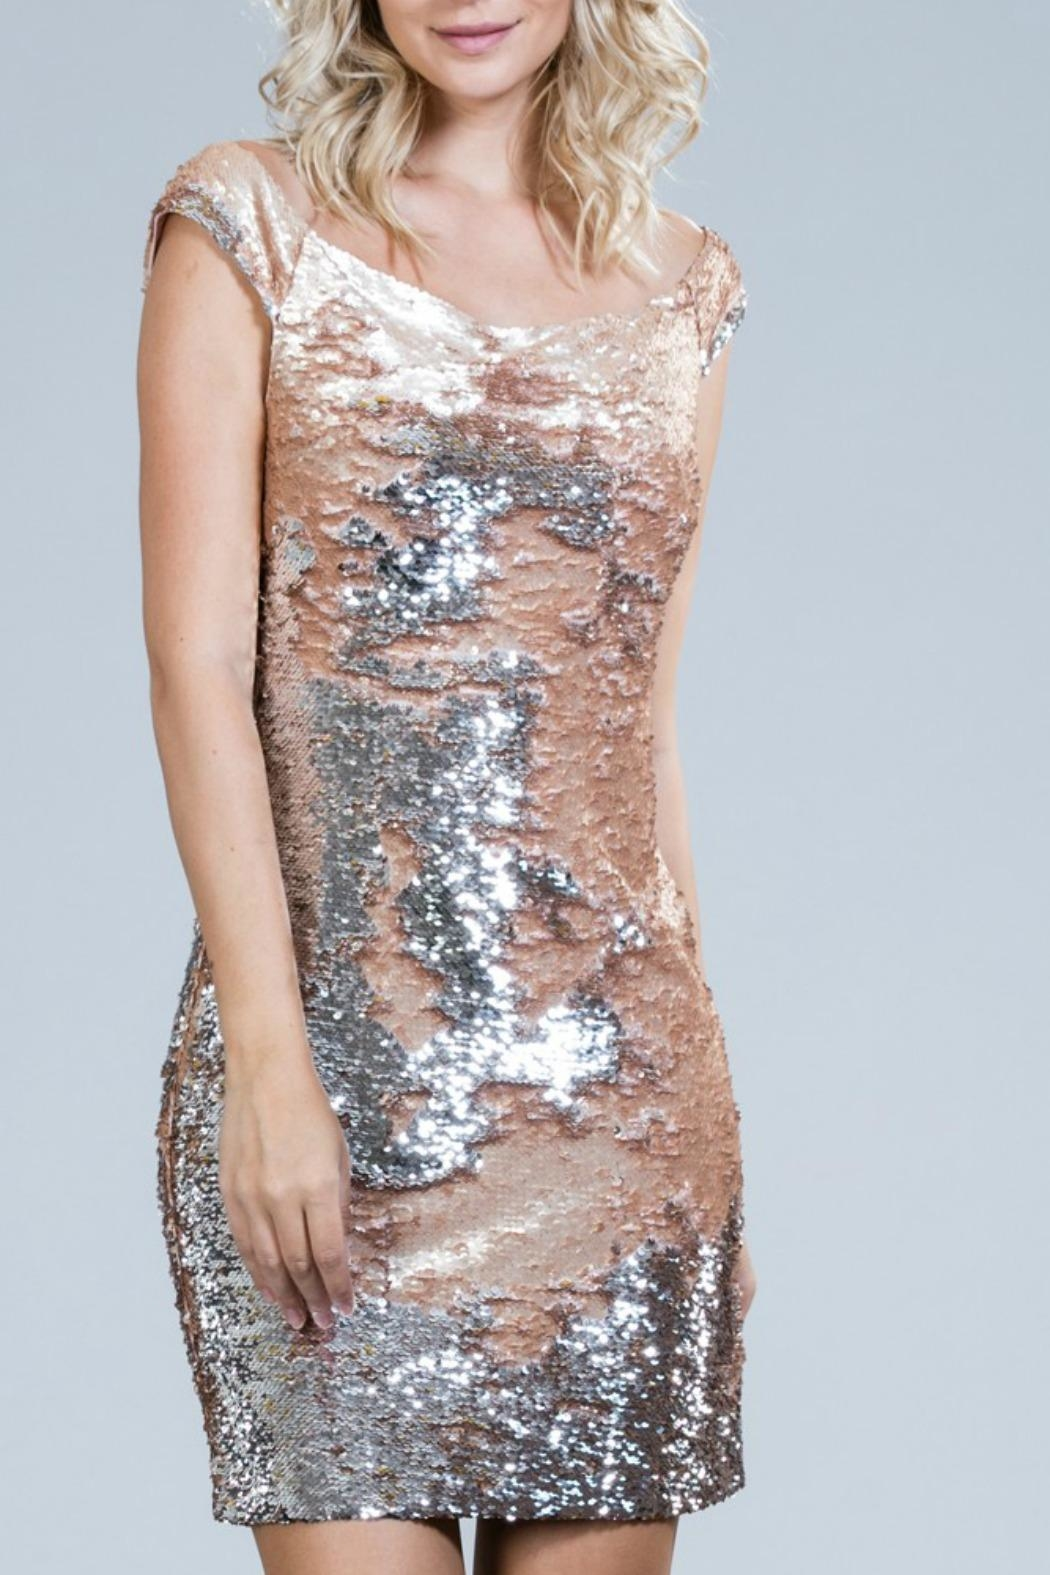 Ark & Co. Blush Sequin Dress - Main Image